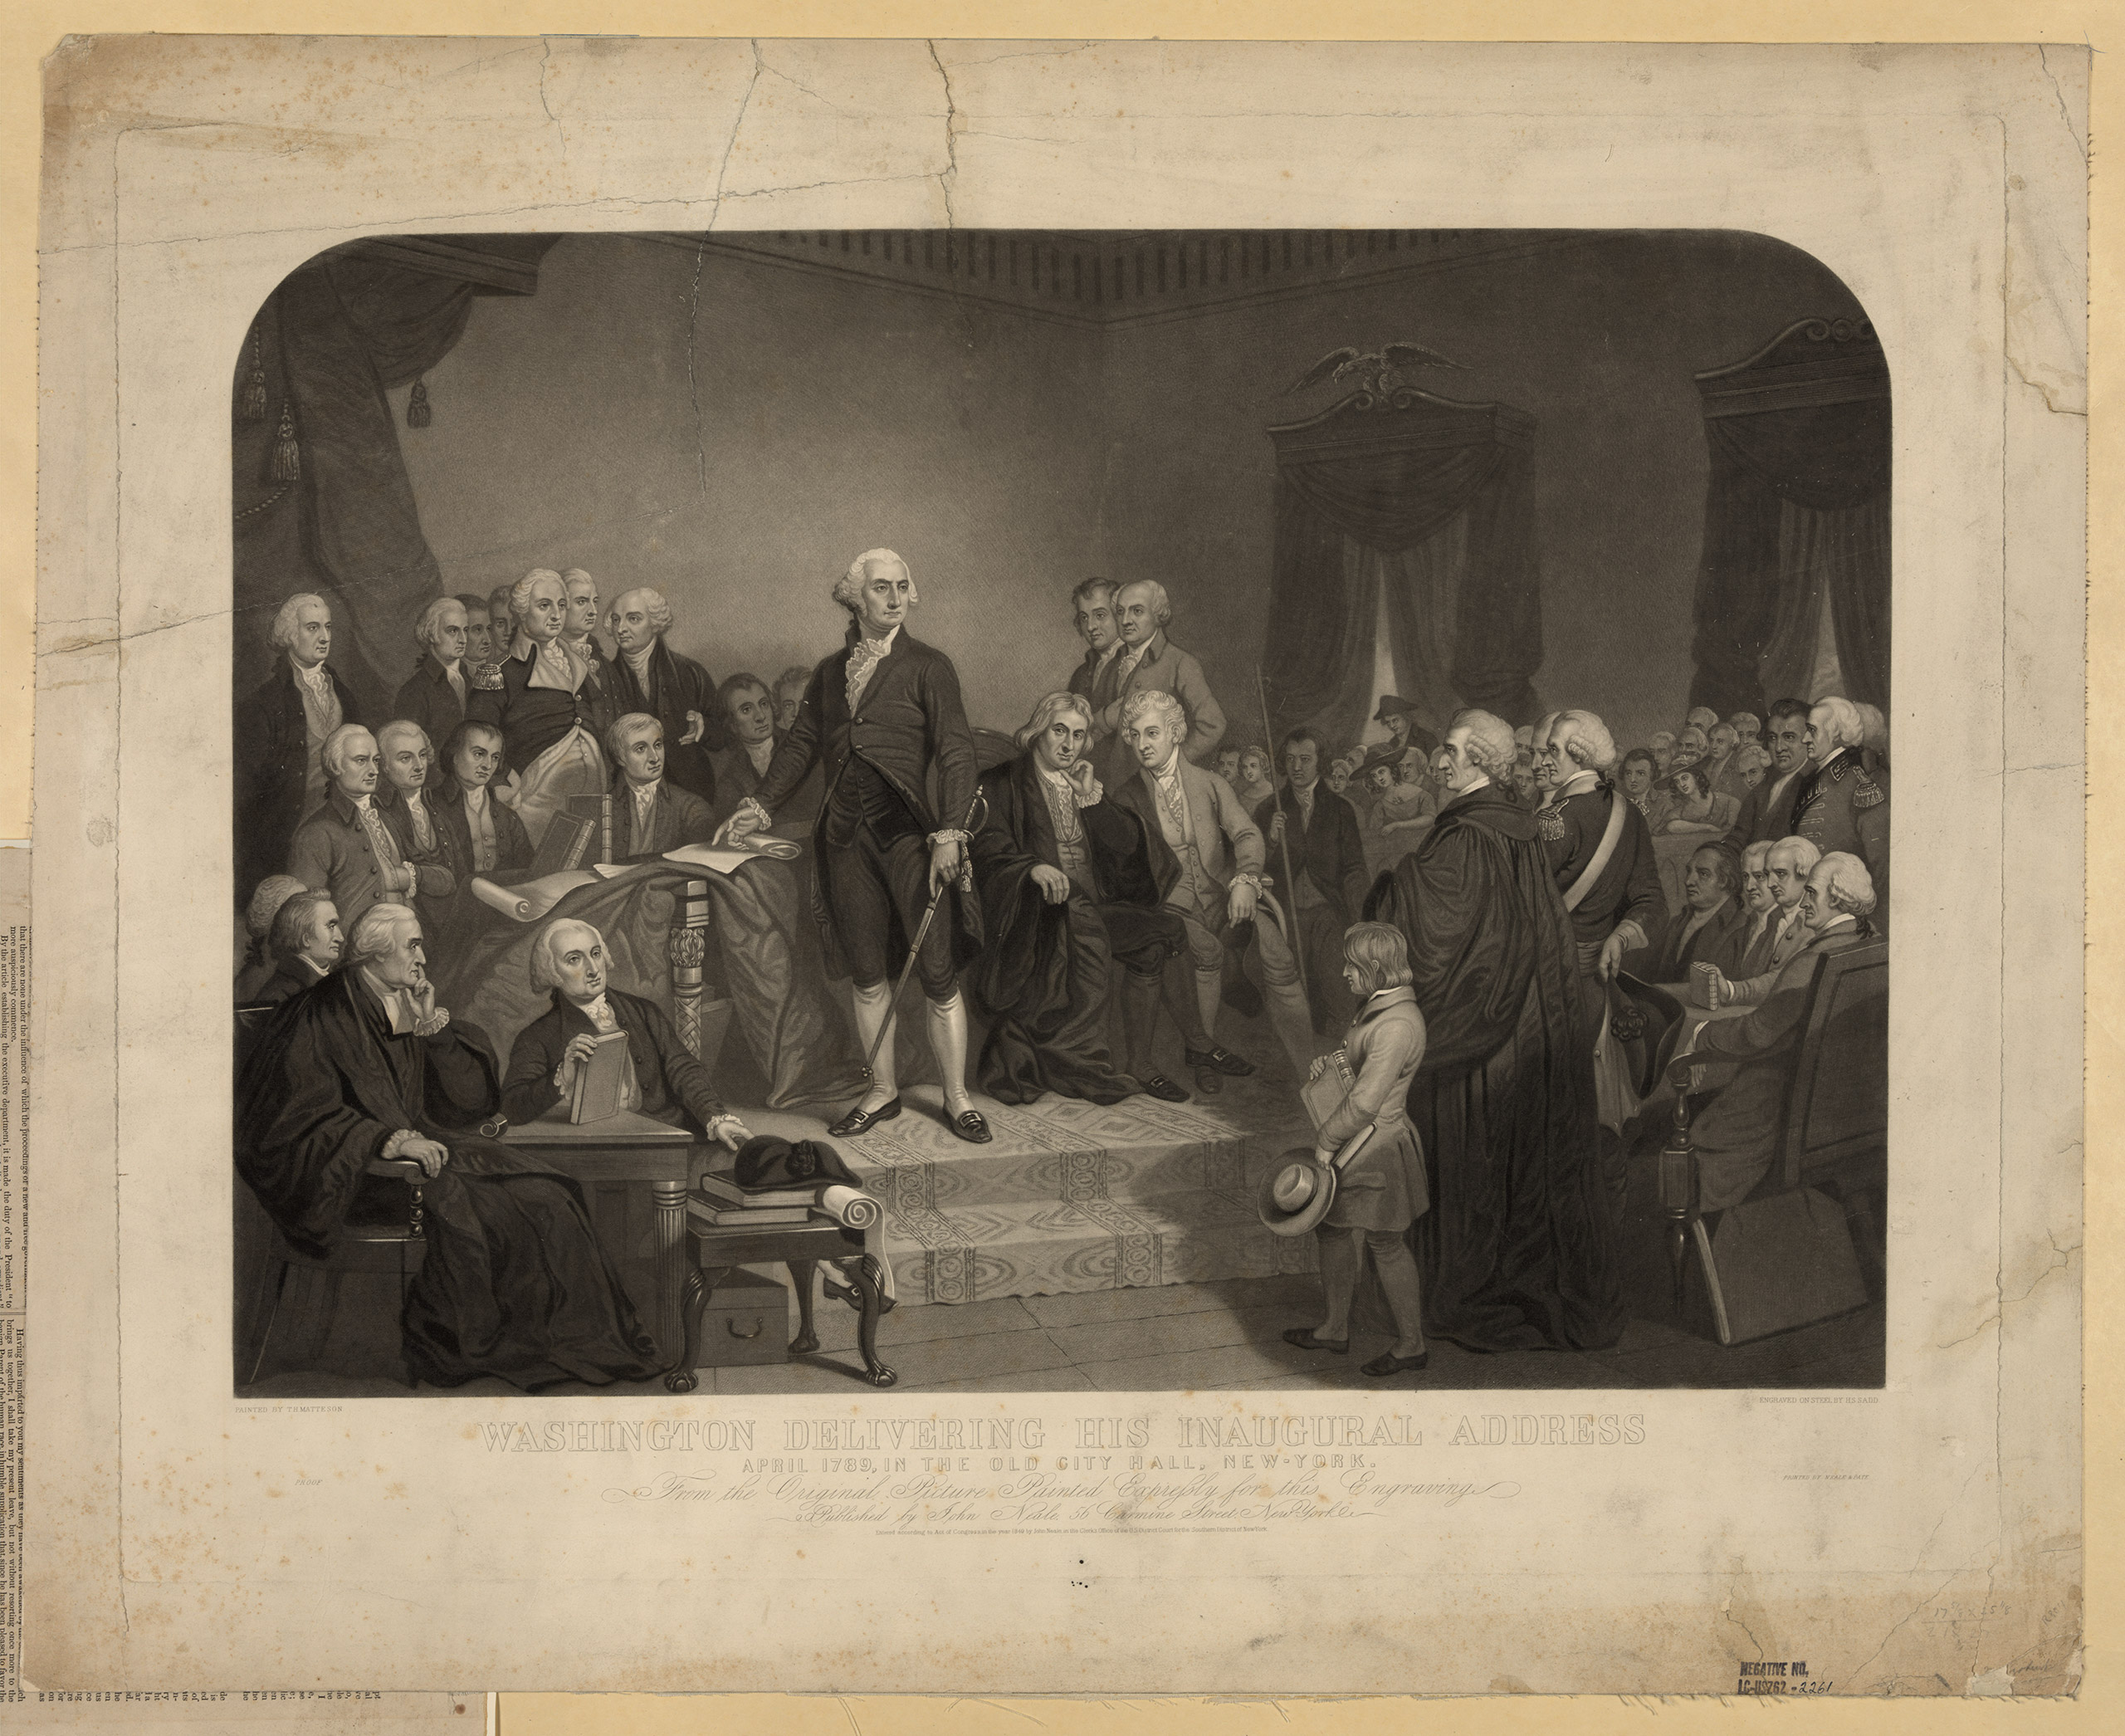 George Washington delivering his first inaugural address, 1789.